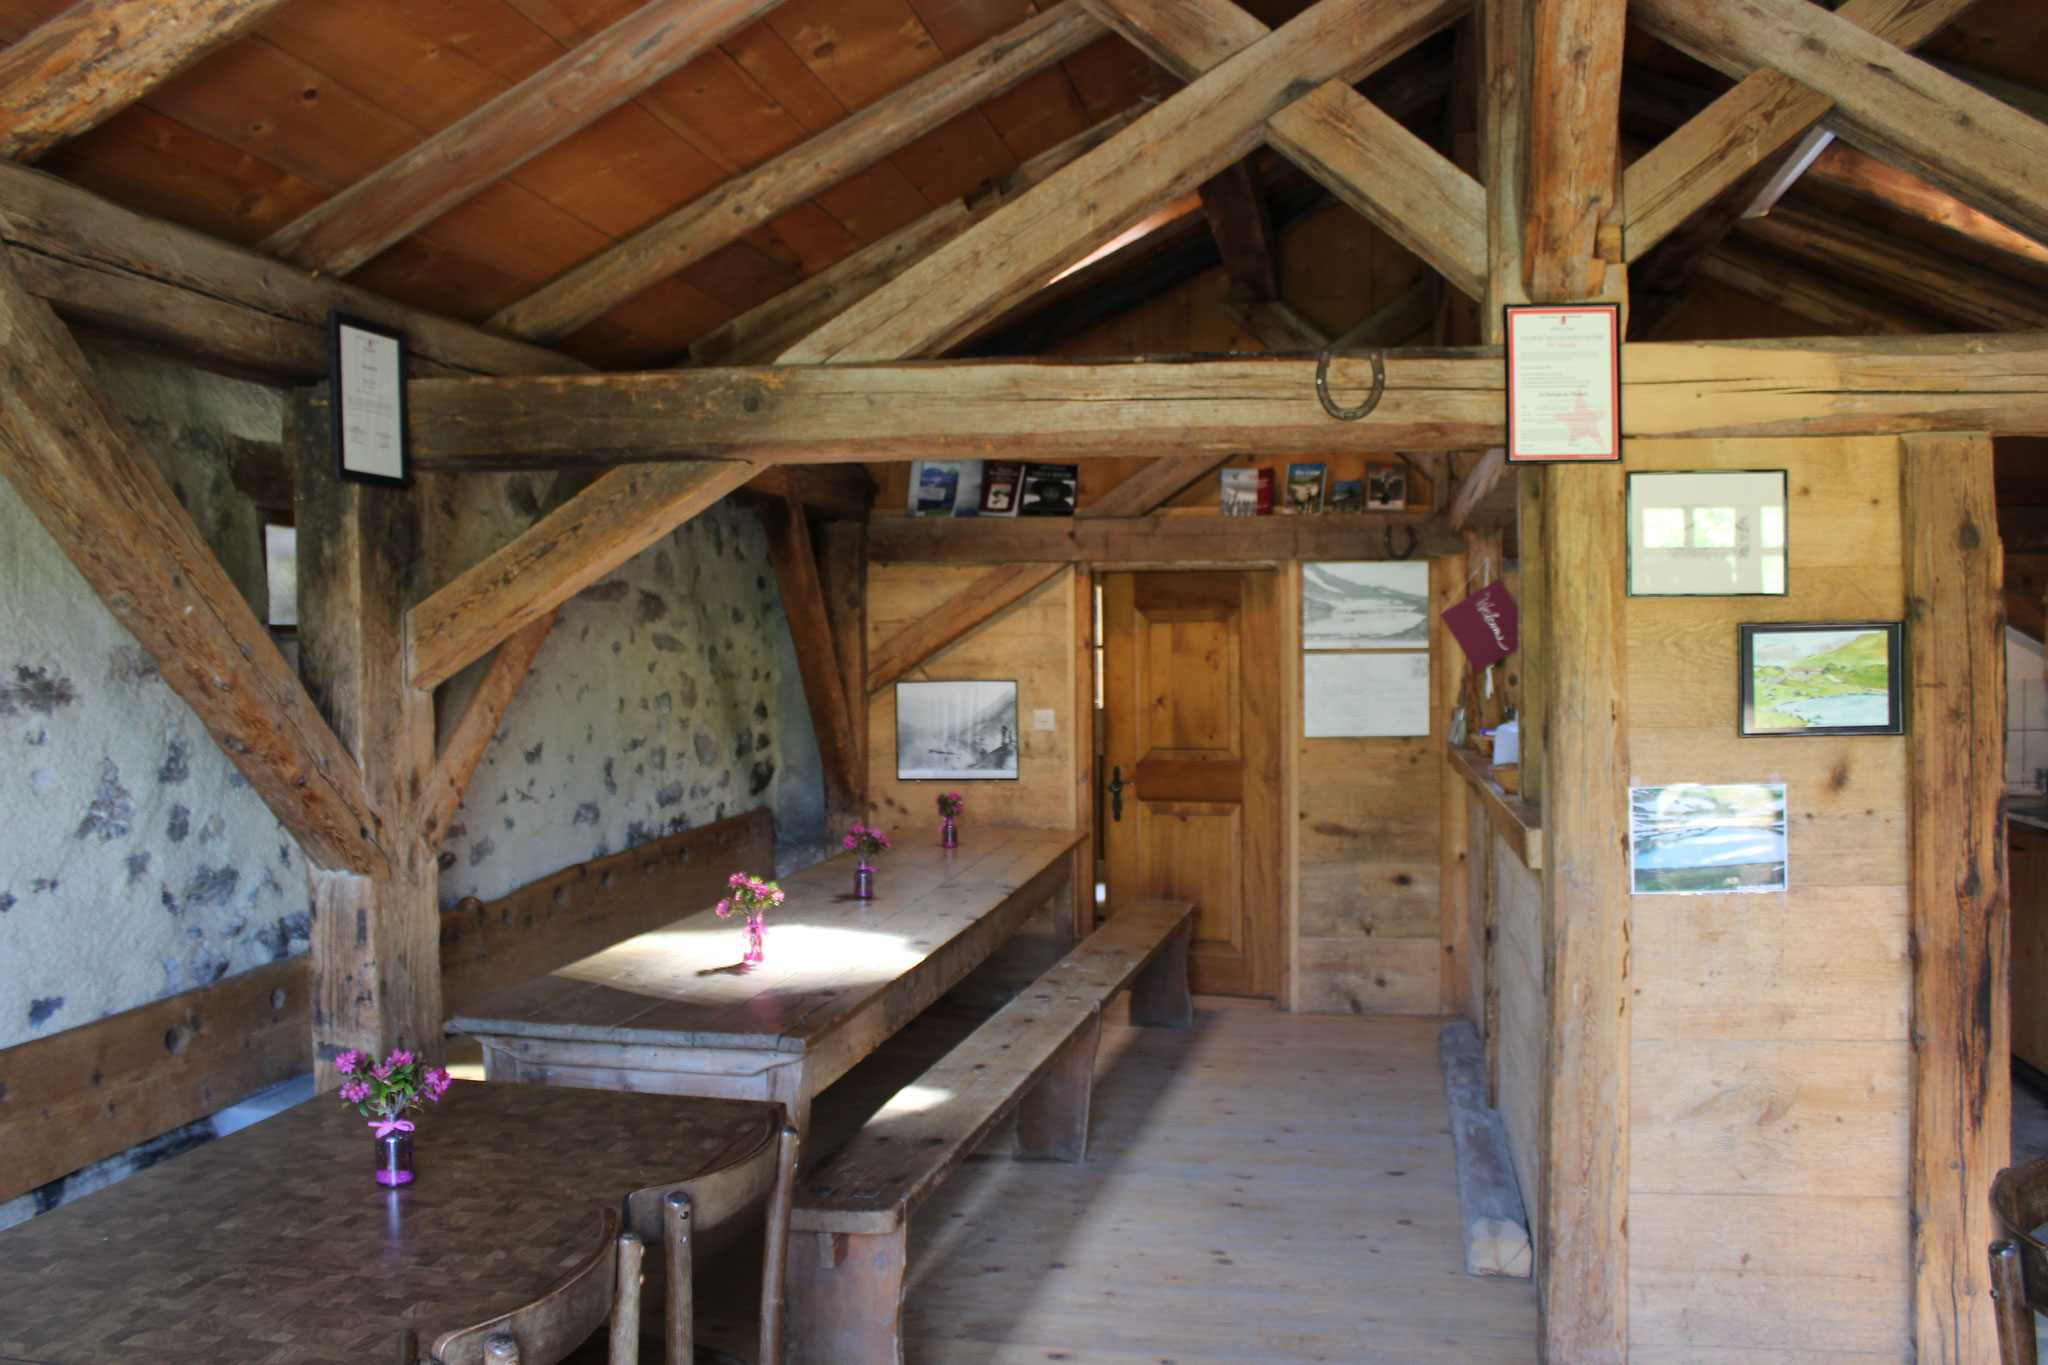 Inside the refuge (Summer 2015)